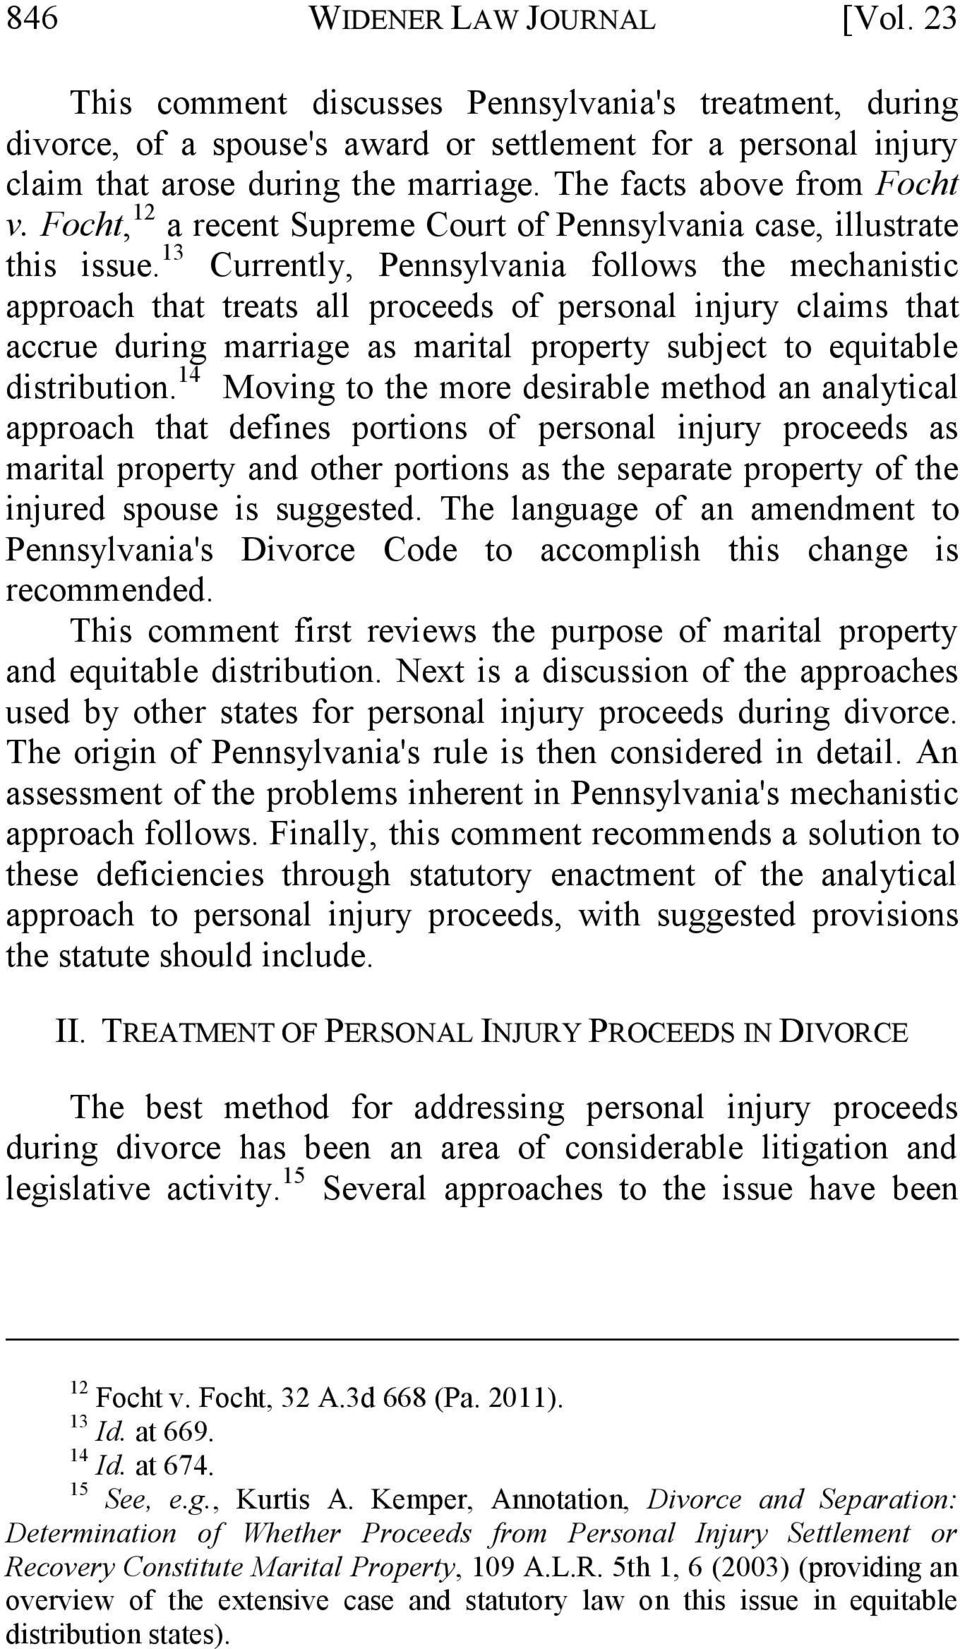 13 Currently, Pennsylvania follows the mechanistic approach that treats all proceeds of personal injury claims that accrue during marriage as marital property subject to equitable distribution.